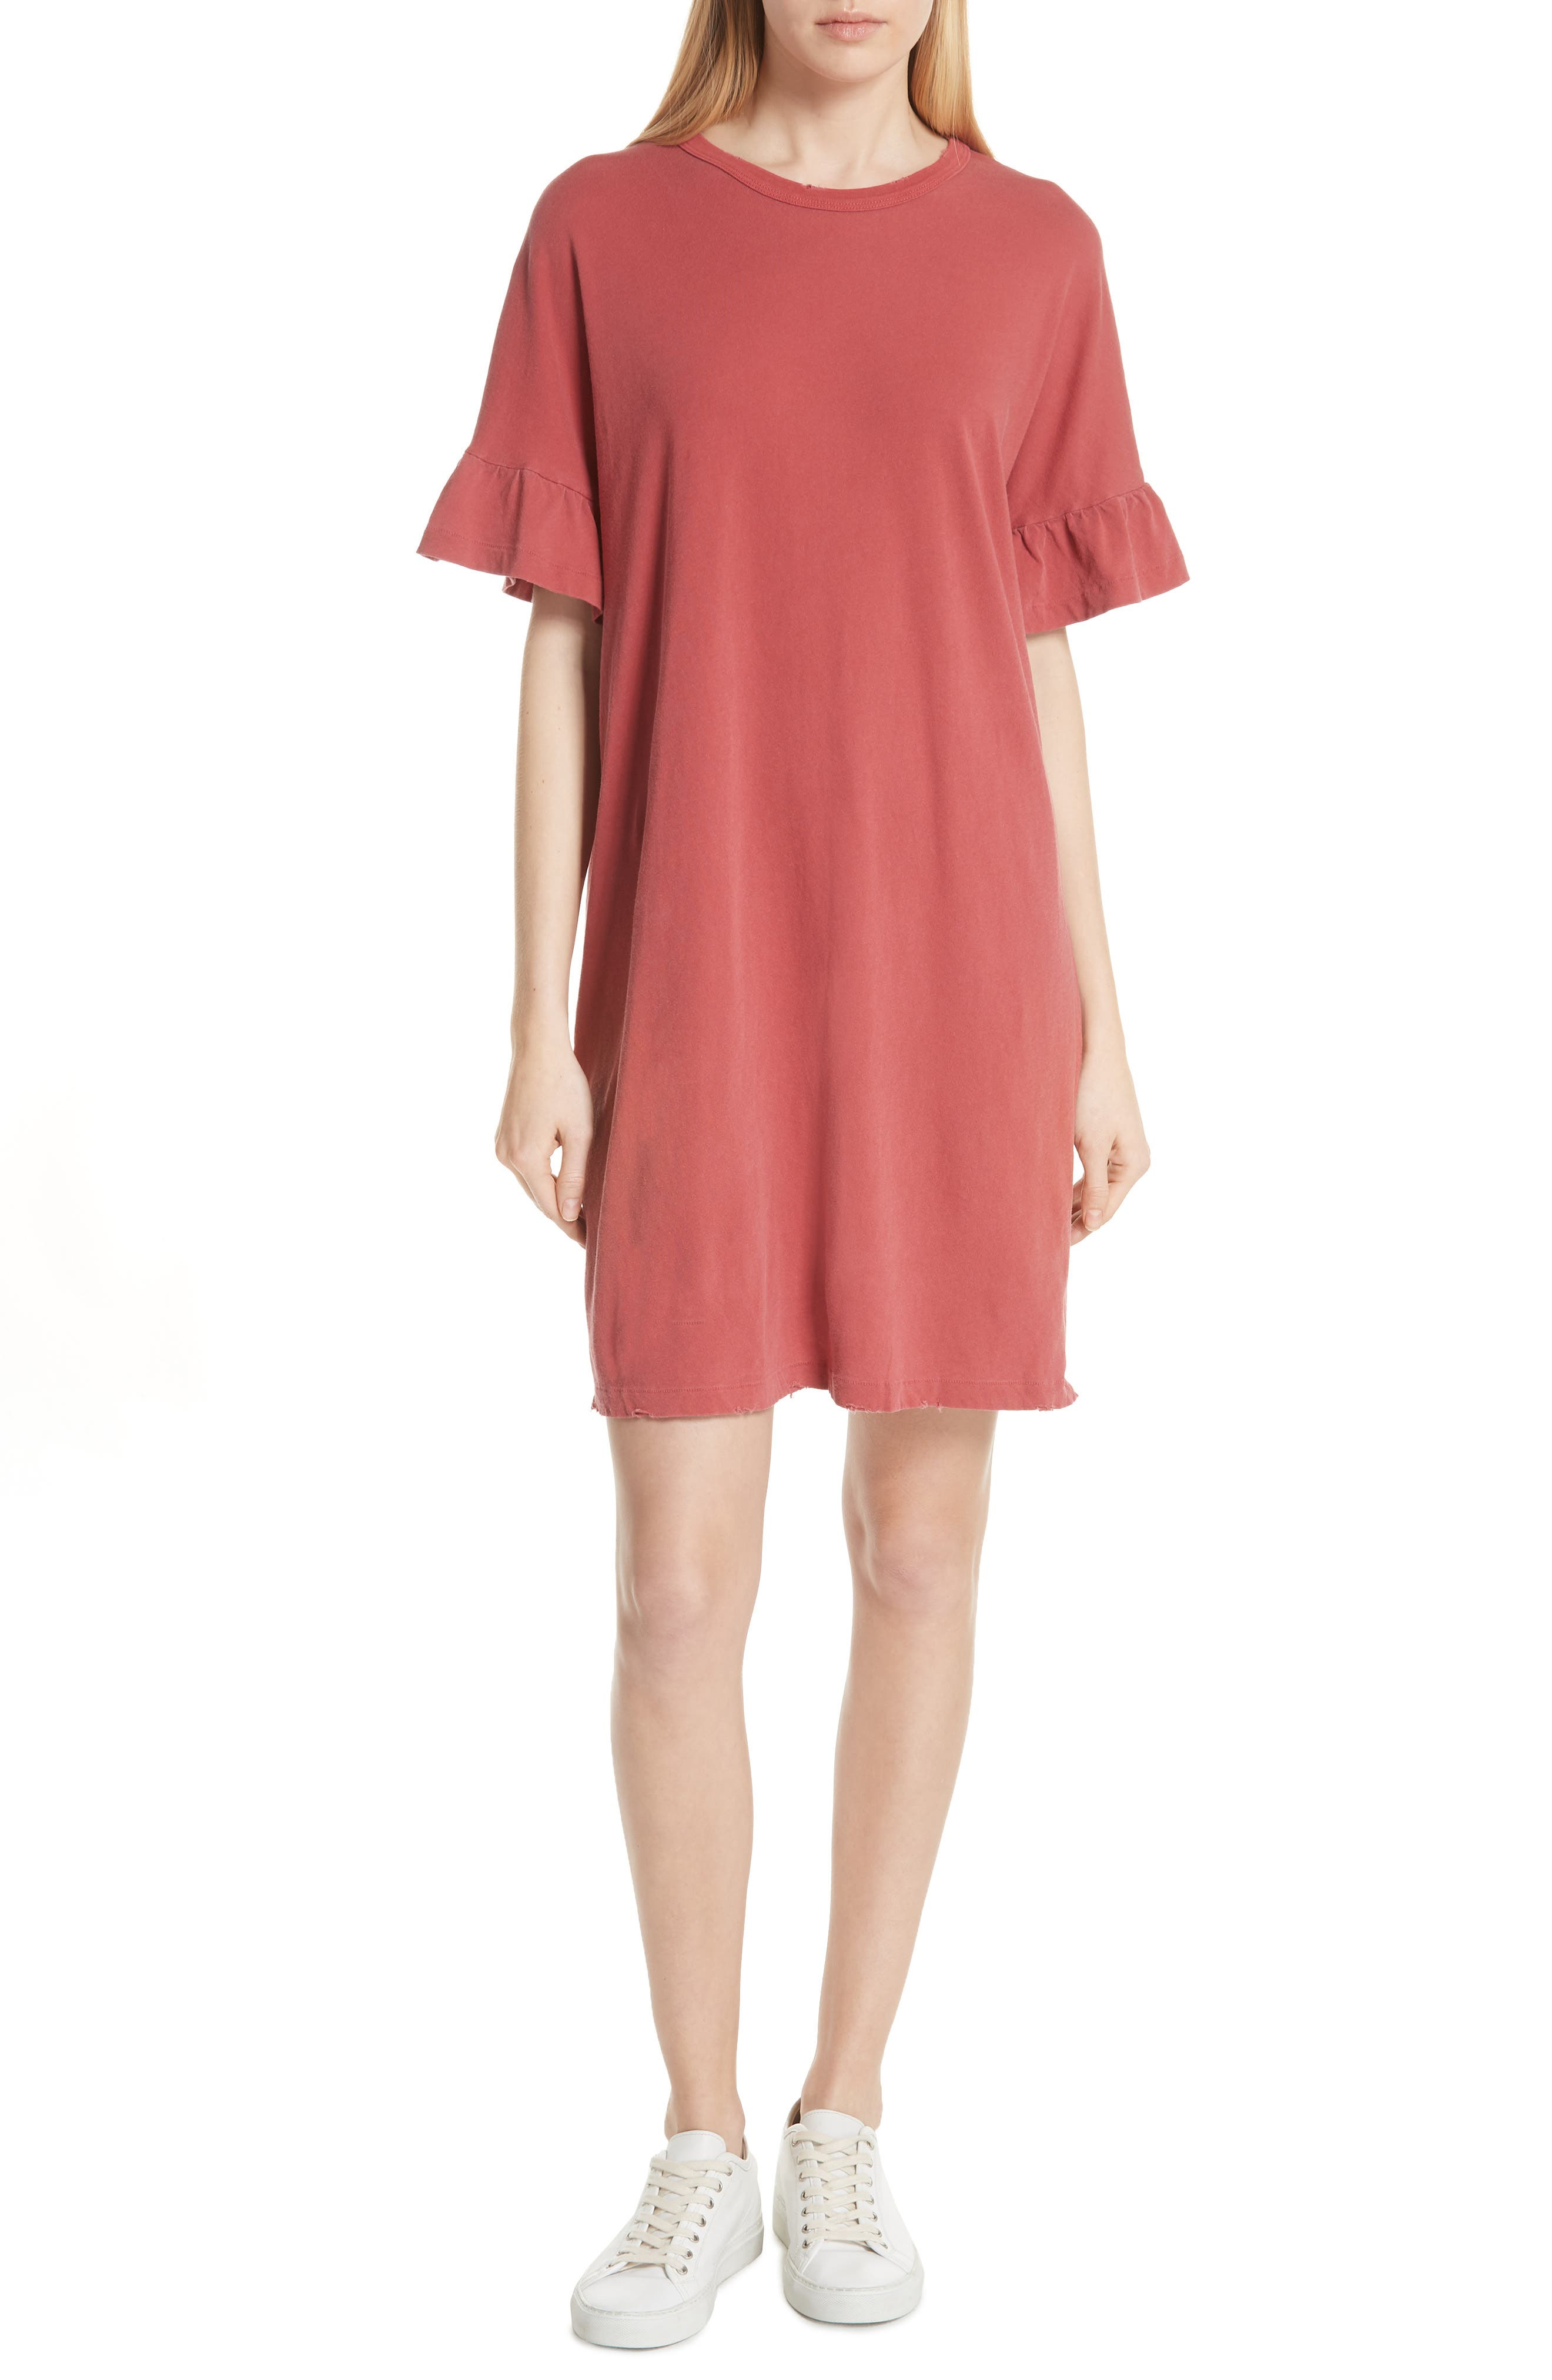 THE GREAT. Ruffle Sleeve T-Shirt Dress